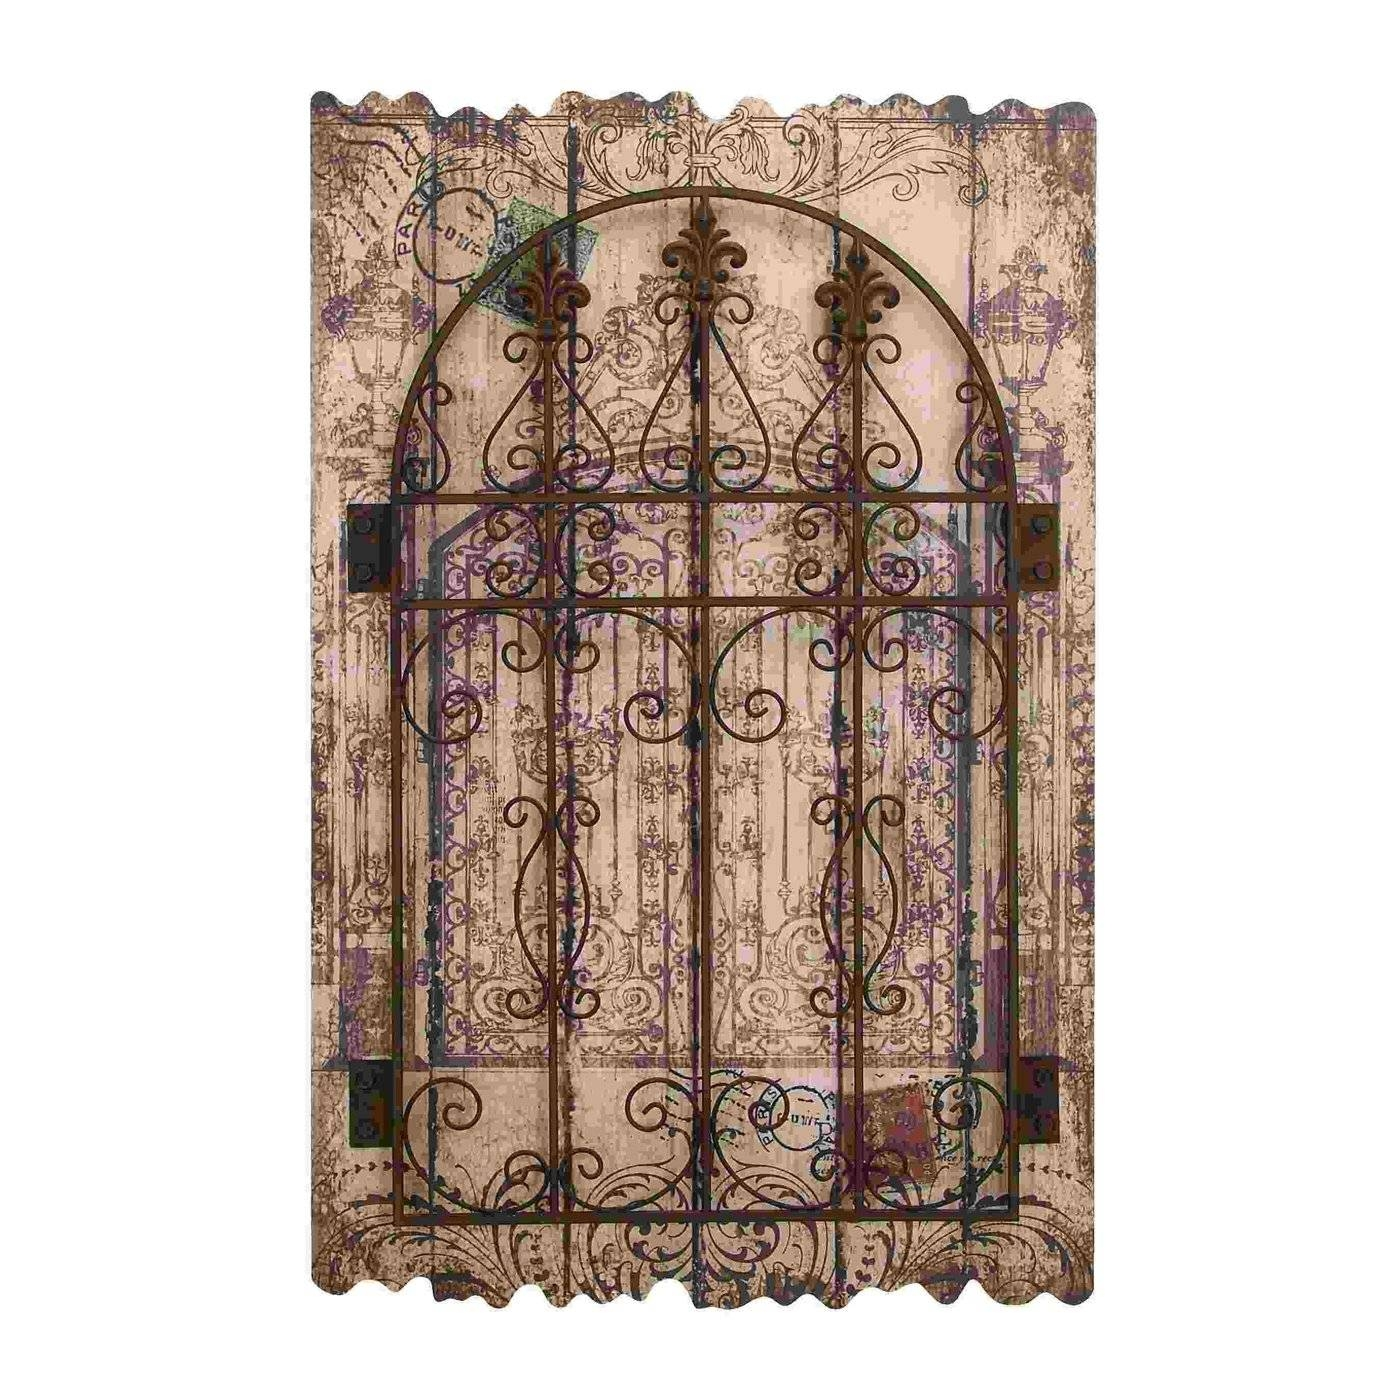 Home Design : Rustic Wood And Metal Wall Art Asian Large Rustic Inside Latest Asian Metal Wall Art (View 13 of 30)